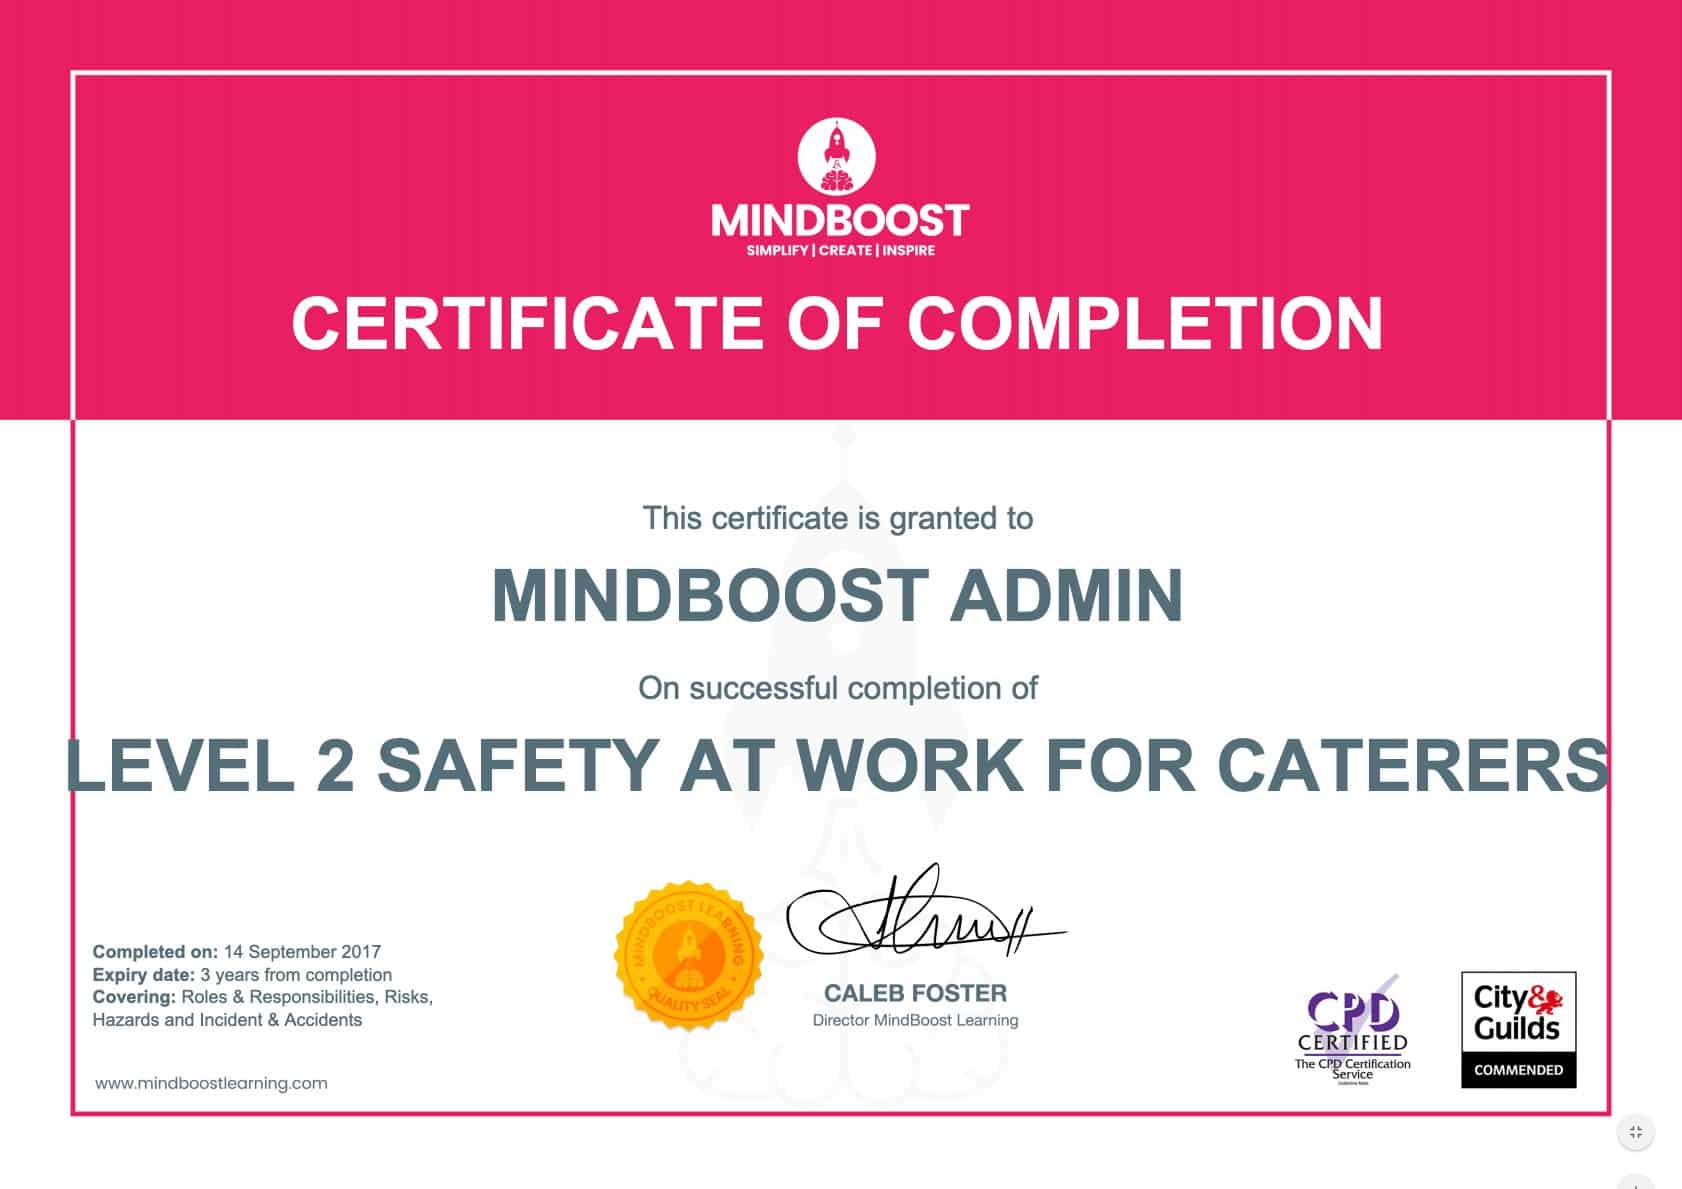 Health & Safety at Work for Caterers Certificate